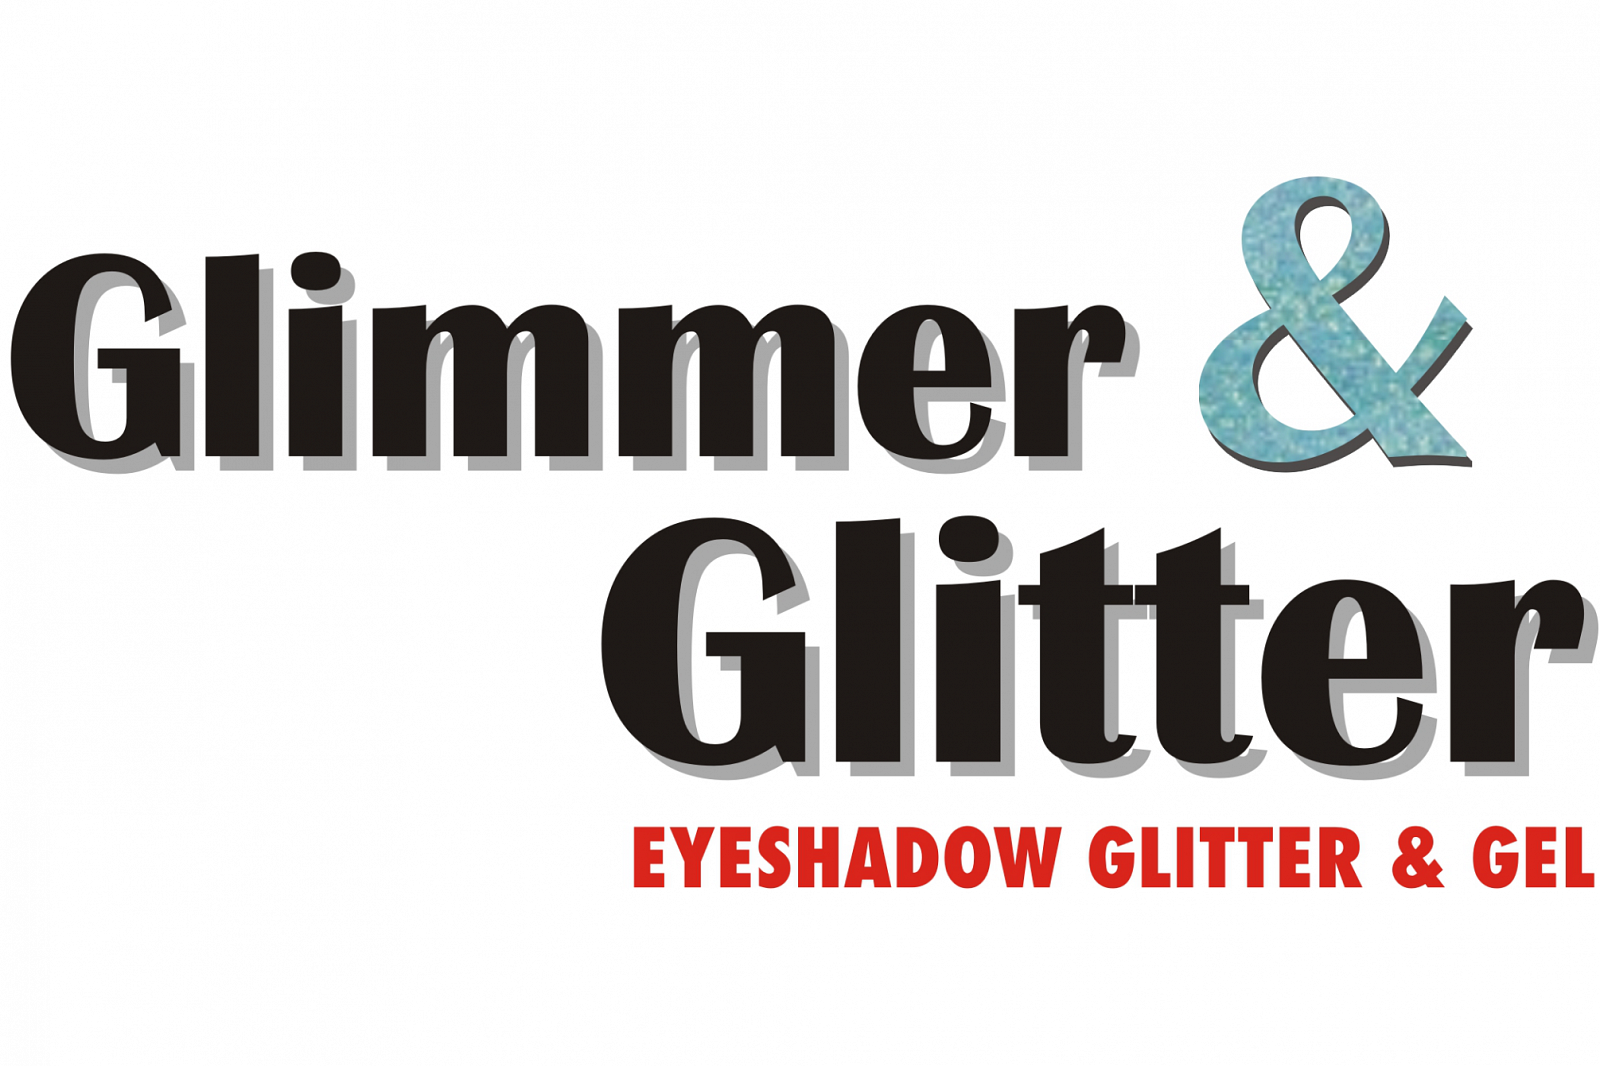 Product category: GLIMMER & GLITTER GEL & EYESHADOW